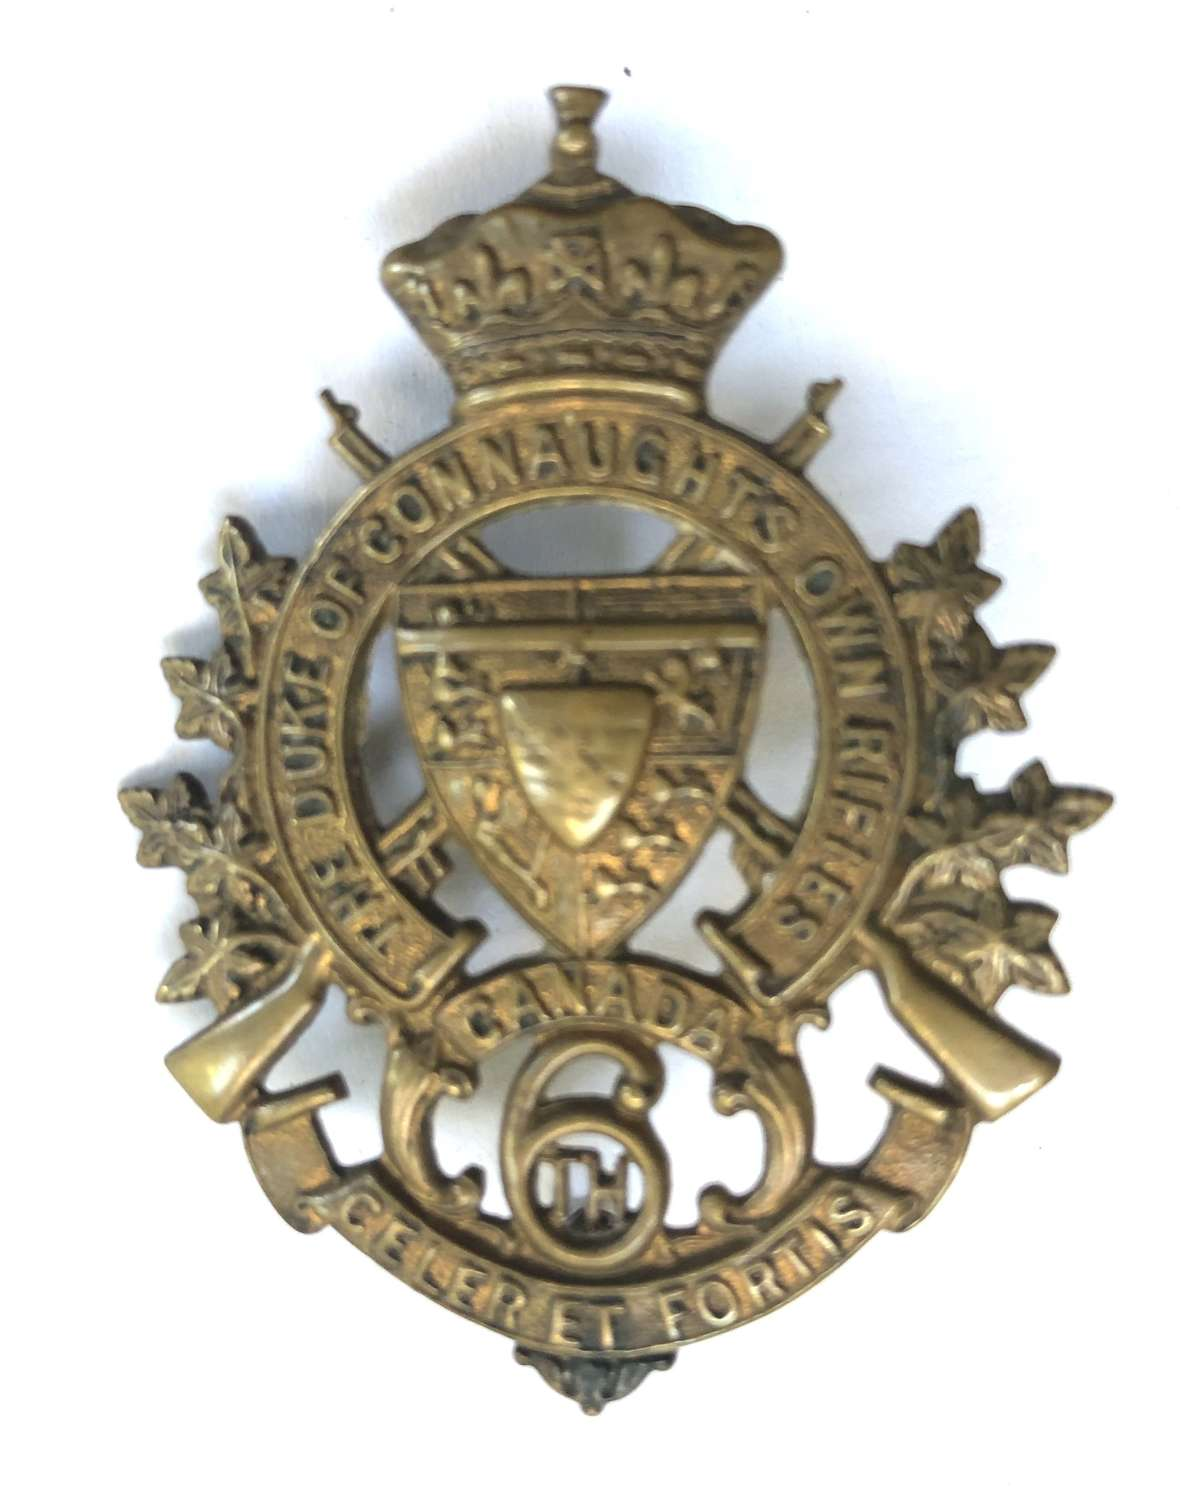 6th Regt Duke of Connaught's Own Rifles of Canada cap badge c1900-05